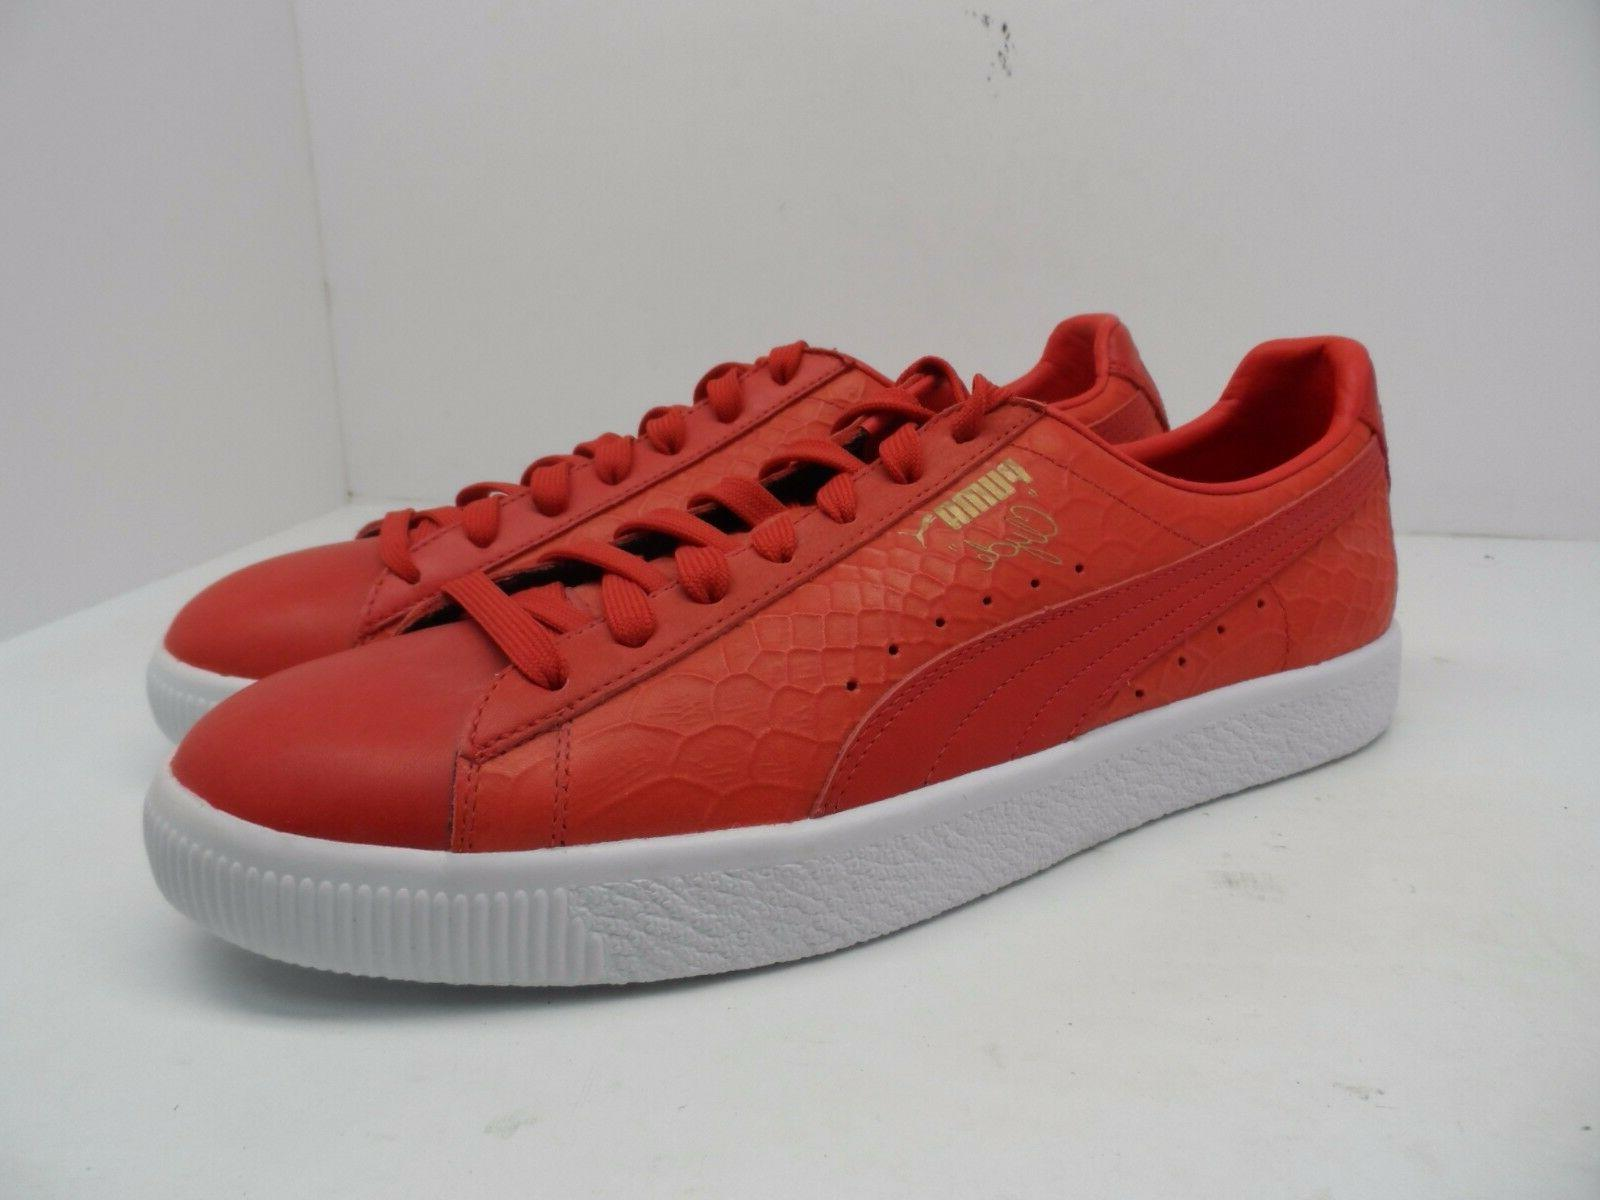 PUMA Men's Clyde Dressed Athletic Casual Fashion Shoe Red/Wh